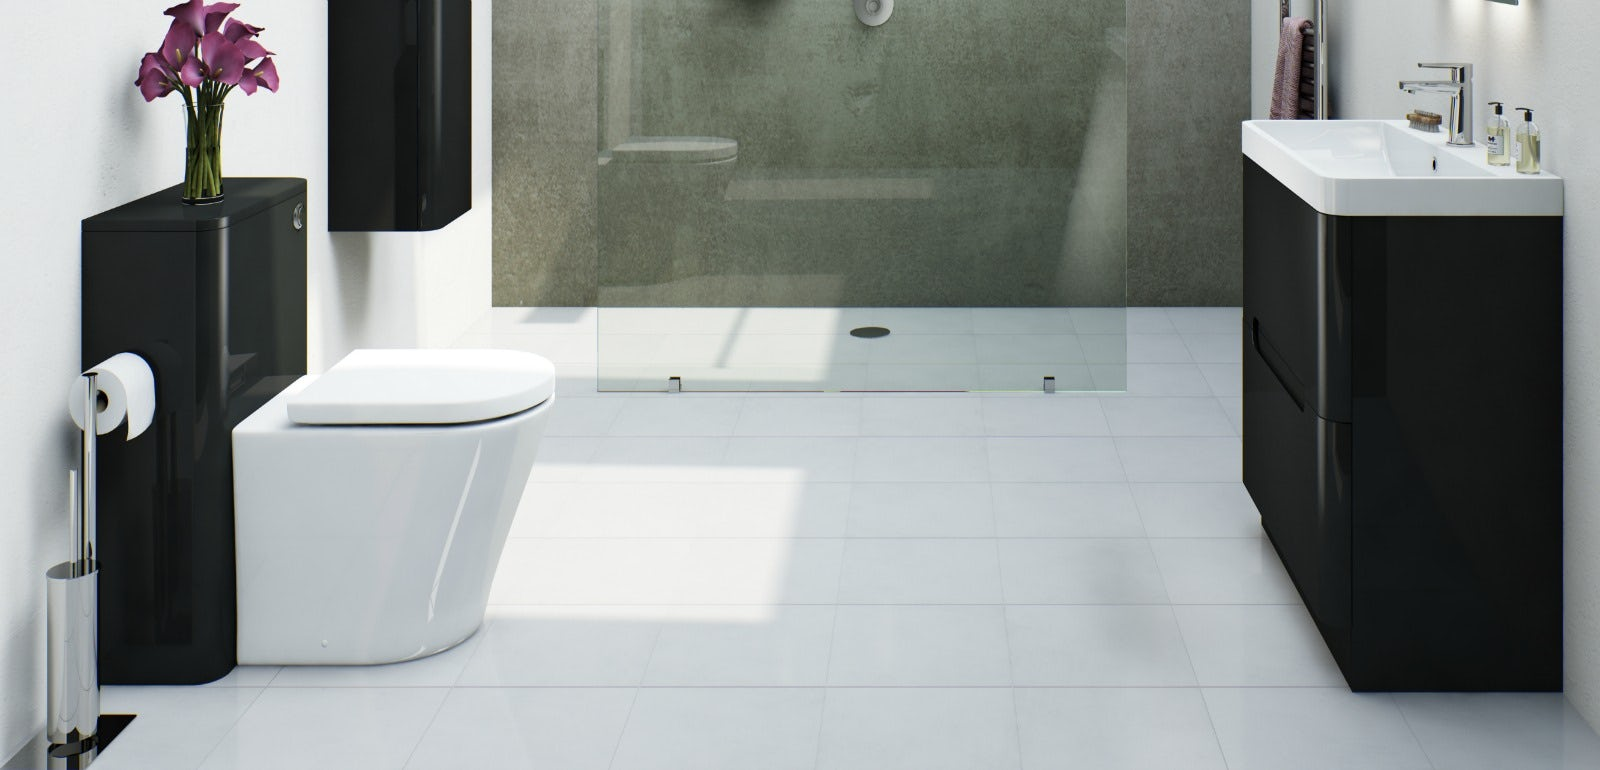 8 reasons why a monochrome bathrooms work | VictoriaPlum.com